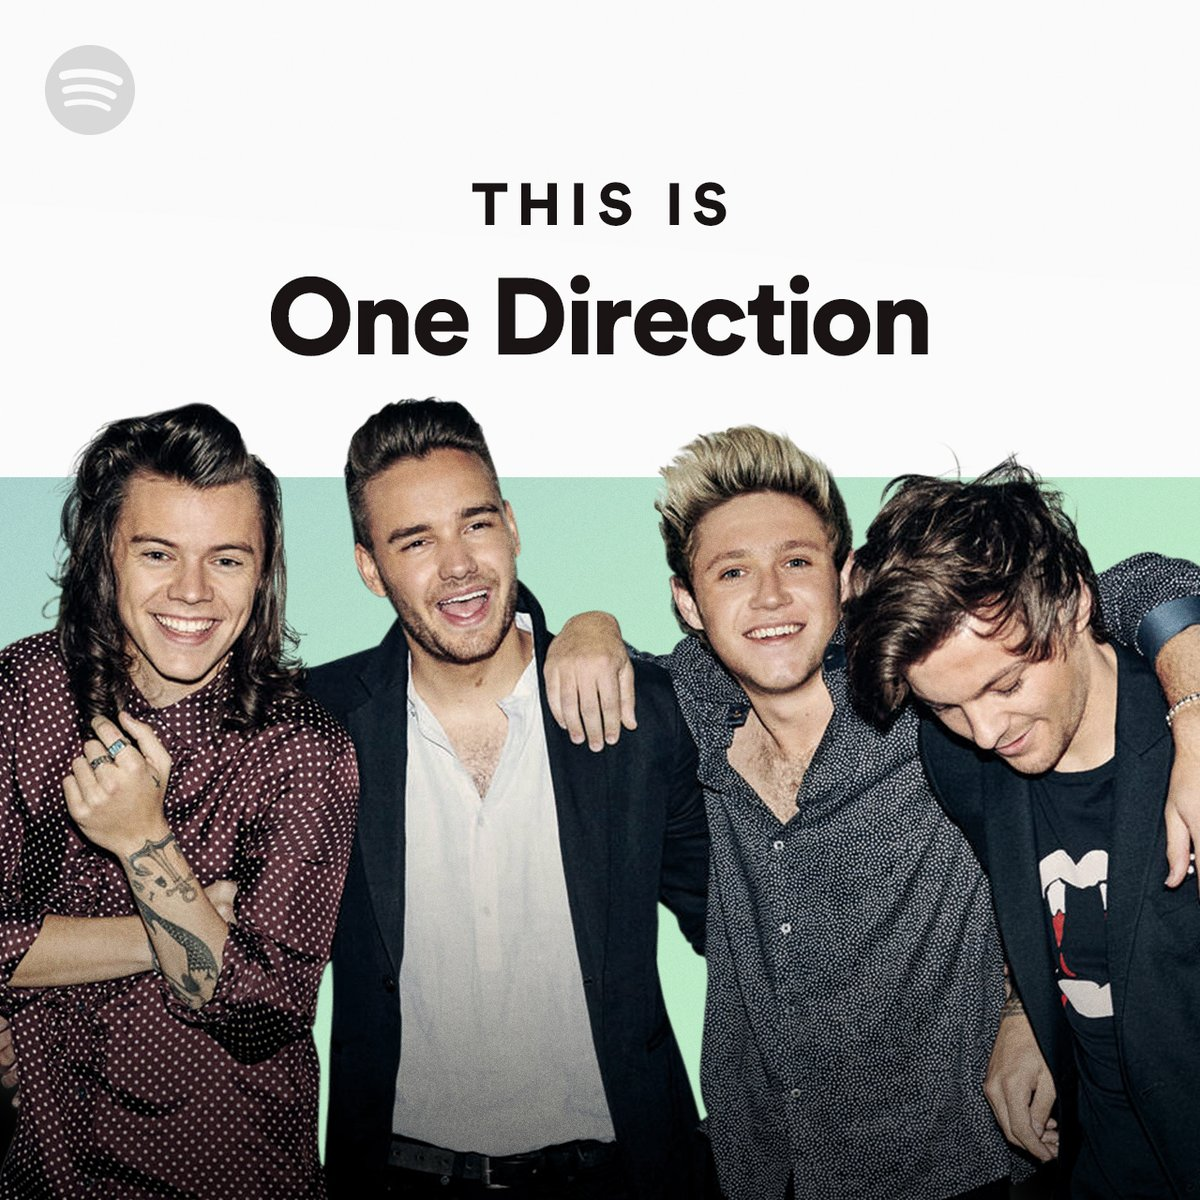 Be sure to check out the enhanced 'This Is One Direction' playlist with videos and storylines on @Spotify now https://t.co/dUcMmJDMZ0 https://t.co/yoRXdZ6lha